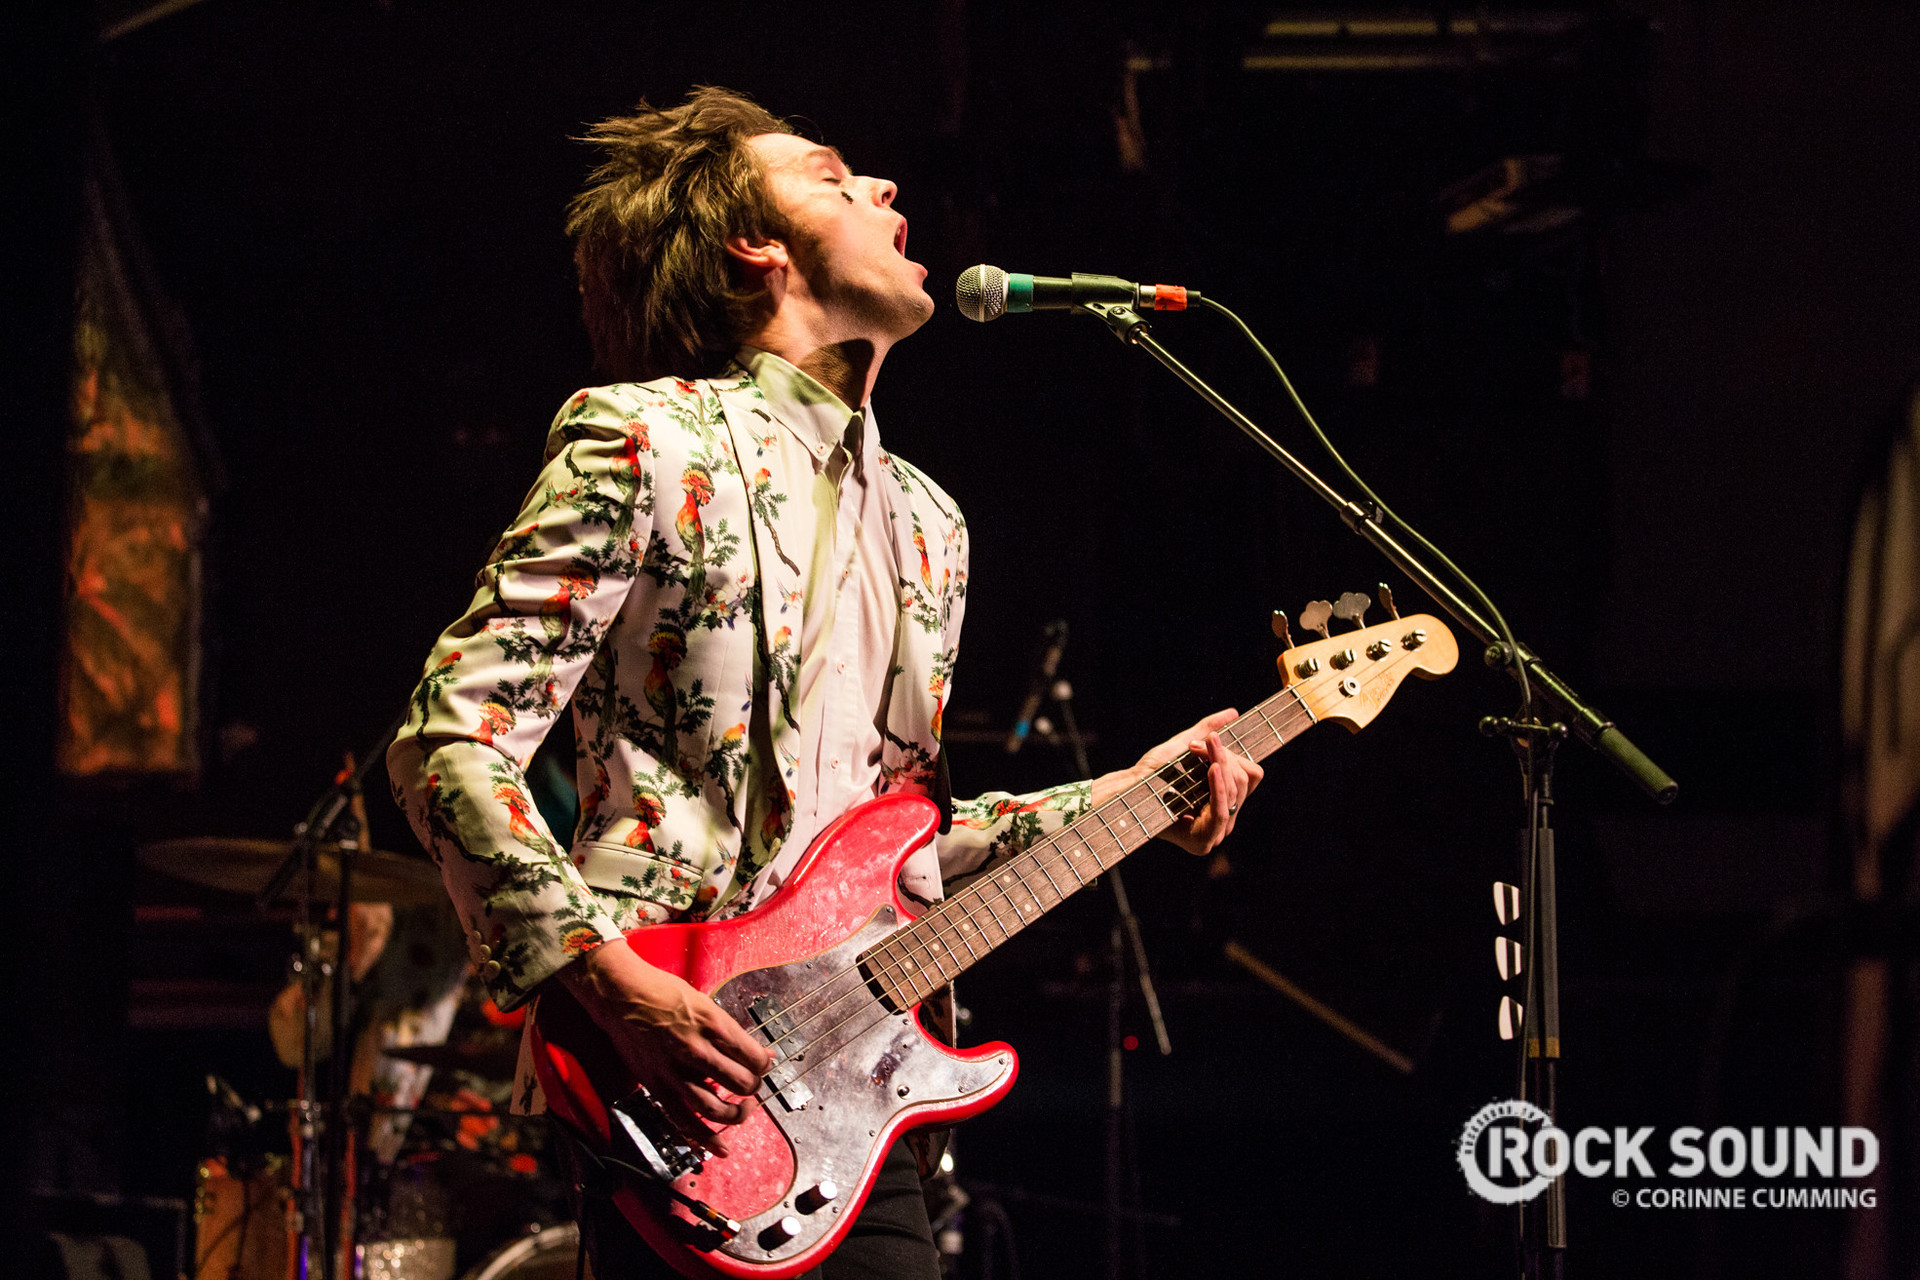 This Is What Happened When Dallon Weekes Was Recognised By A Fan While Cleaning Carpets